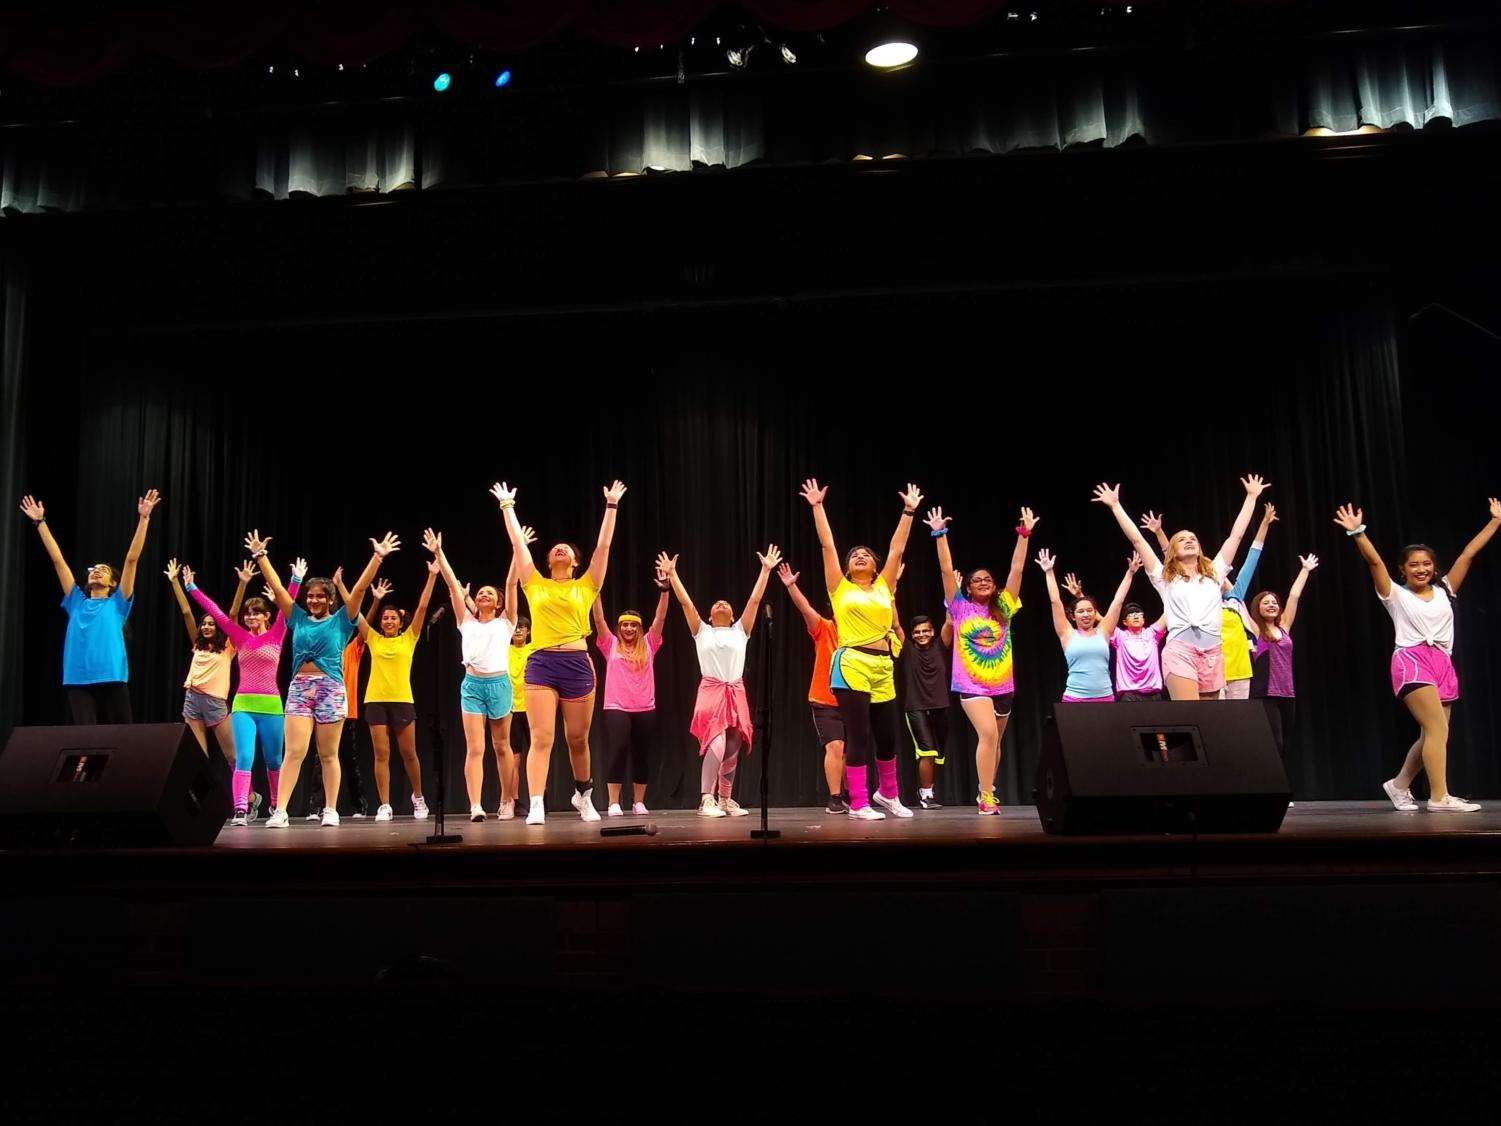 """Vivacé! members finish the final song, """"We Got The Beat/You Can't Stop The Beat"""", at the """"We Are Family"""" show on Saturday at CHS auditorium. The Vivacé! members performed a variety of songs about togetherness and the power of love."""